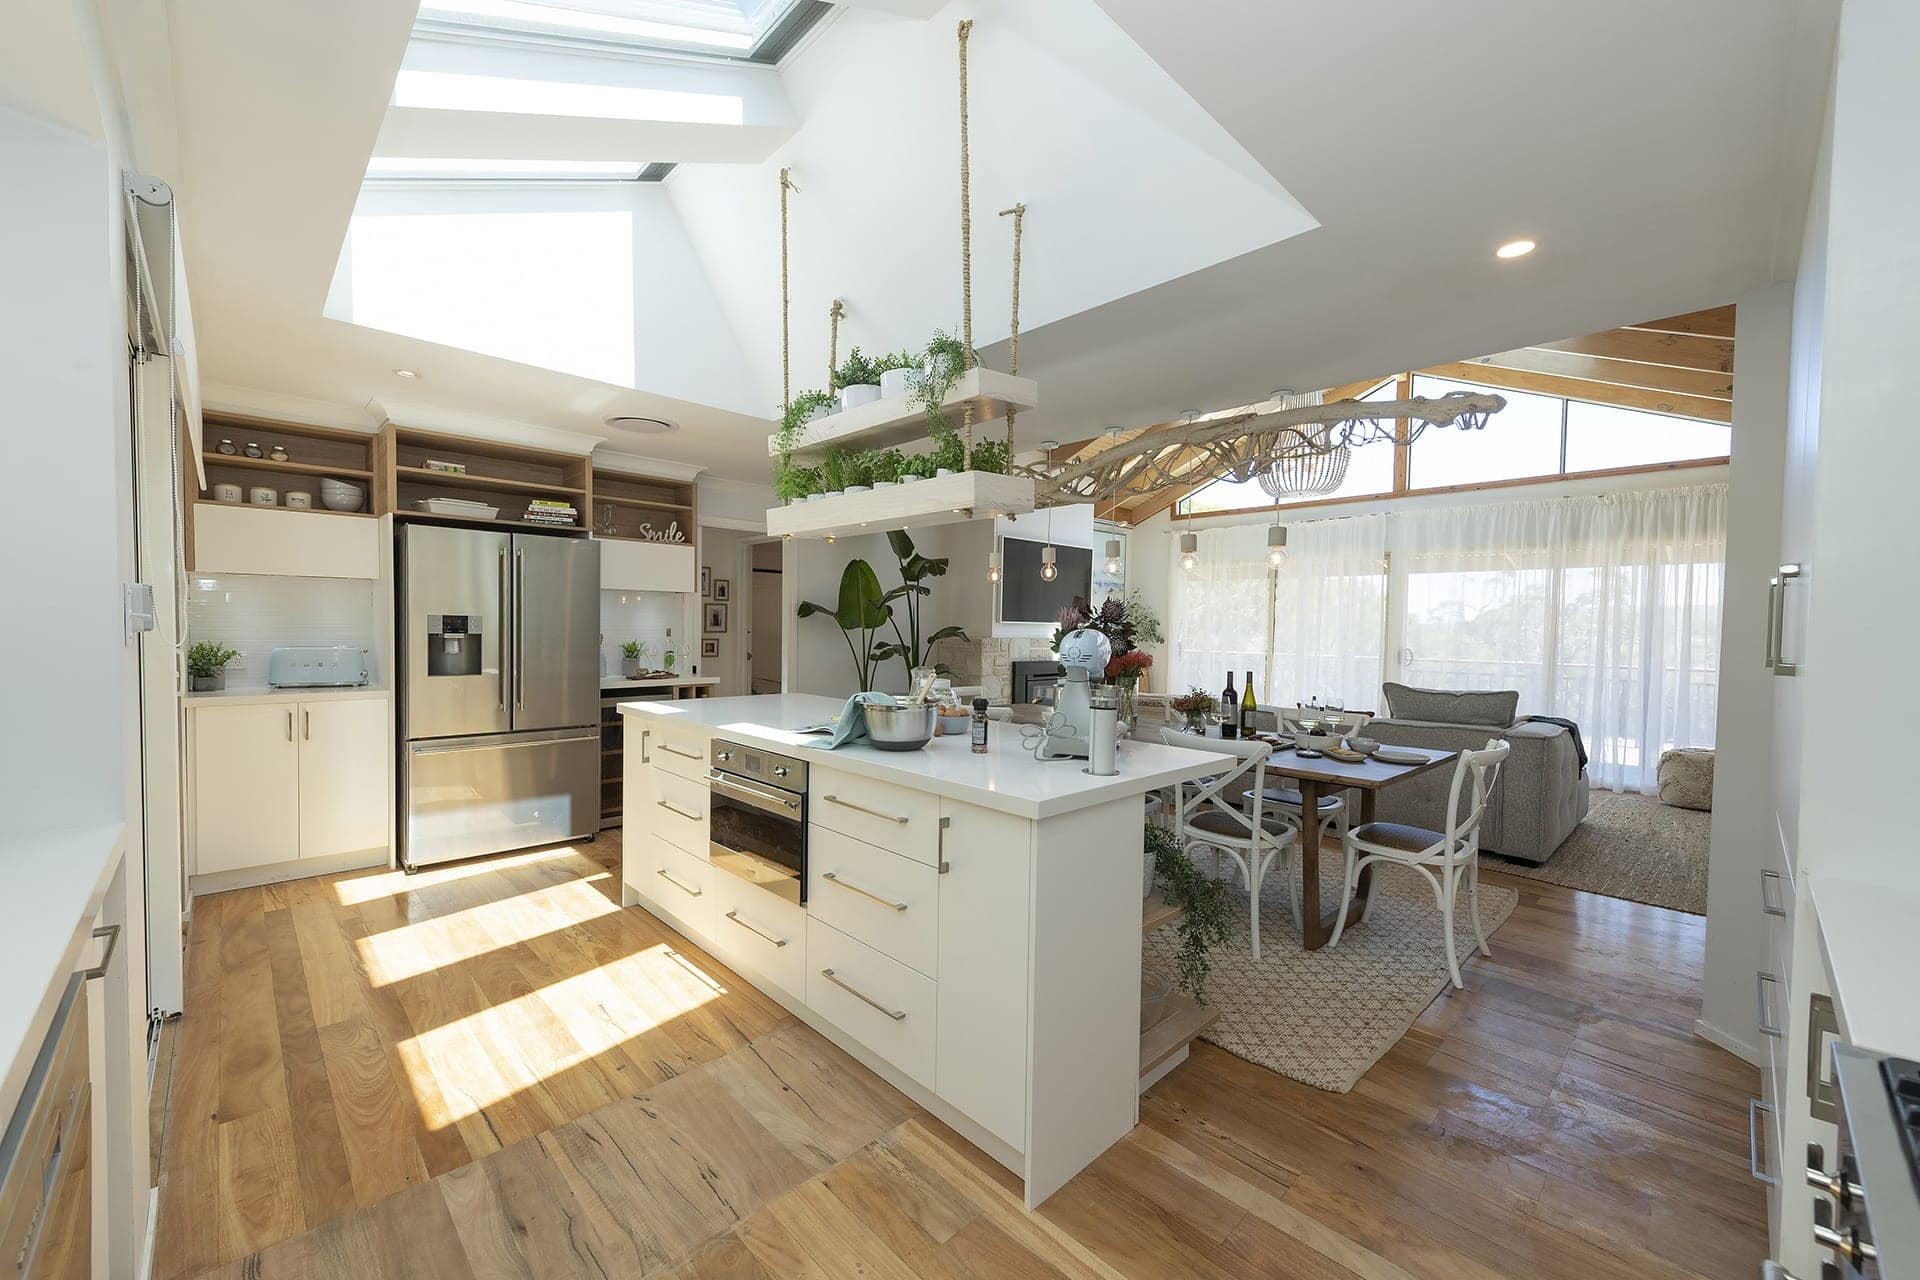 house rules 2019 eliza and mikaela kitchen with large skylight and suspended herb garden